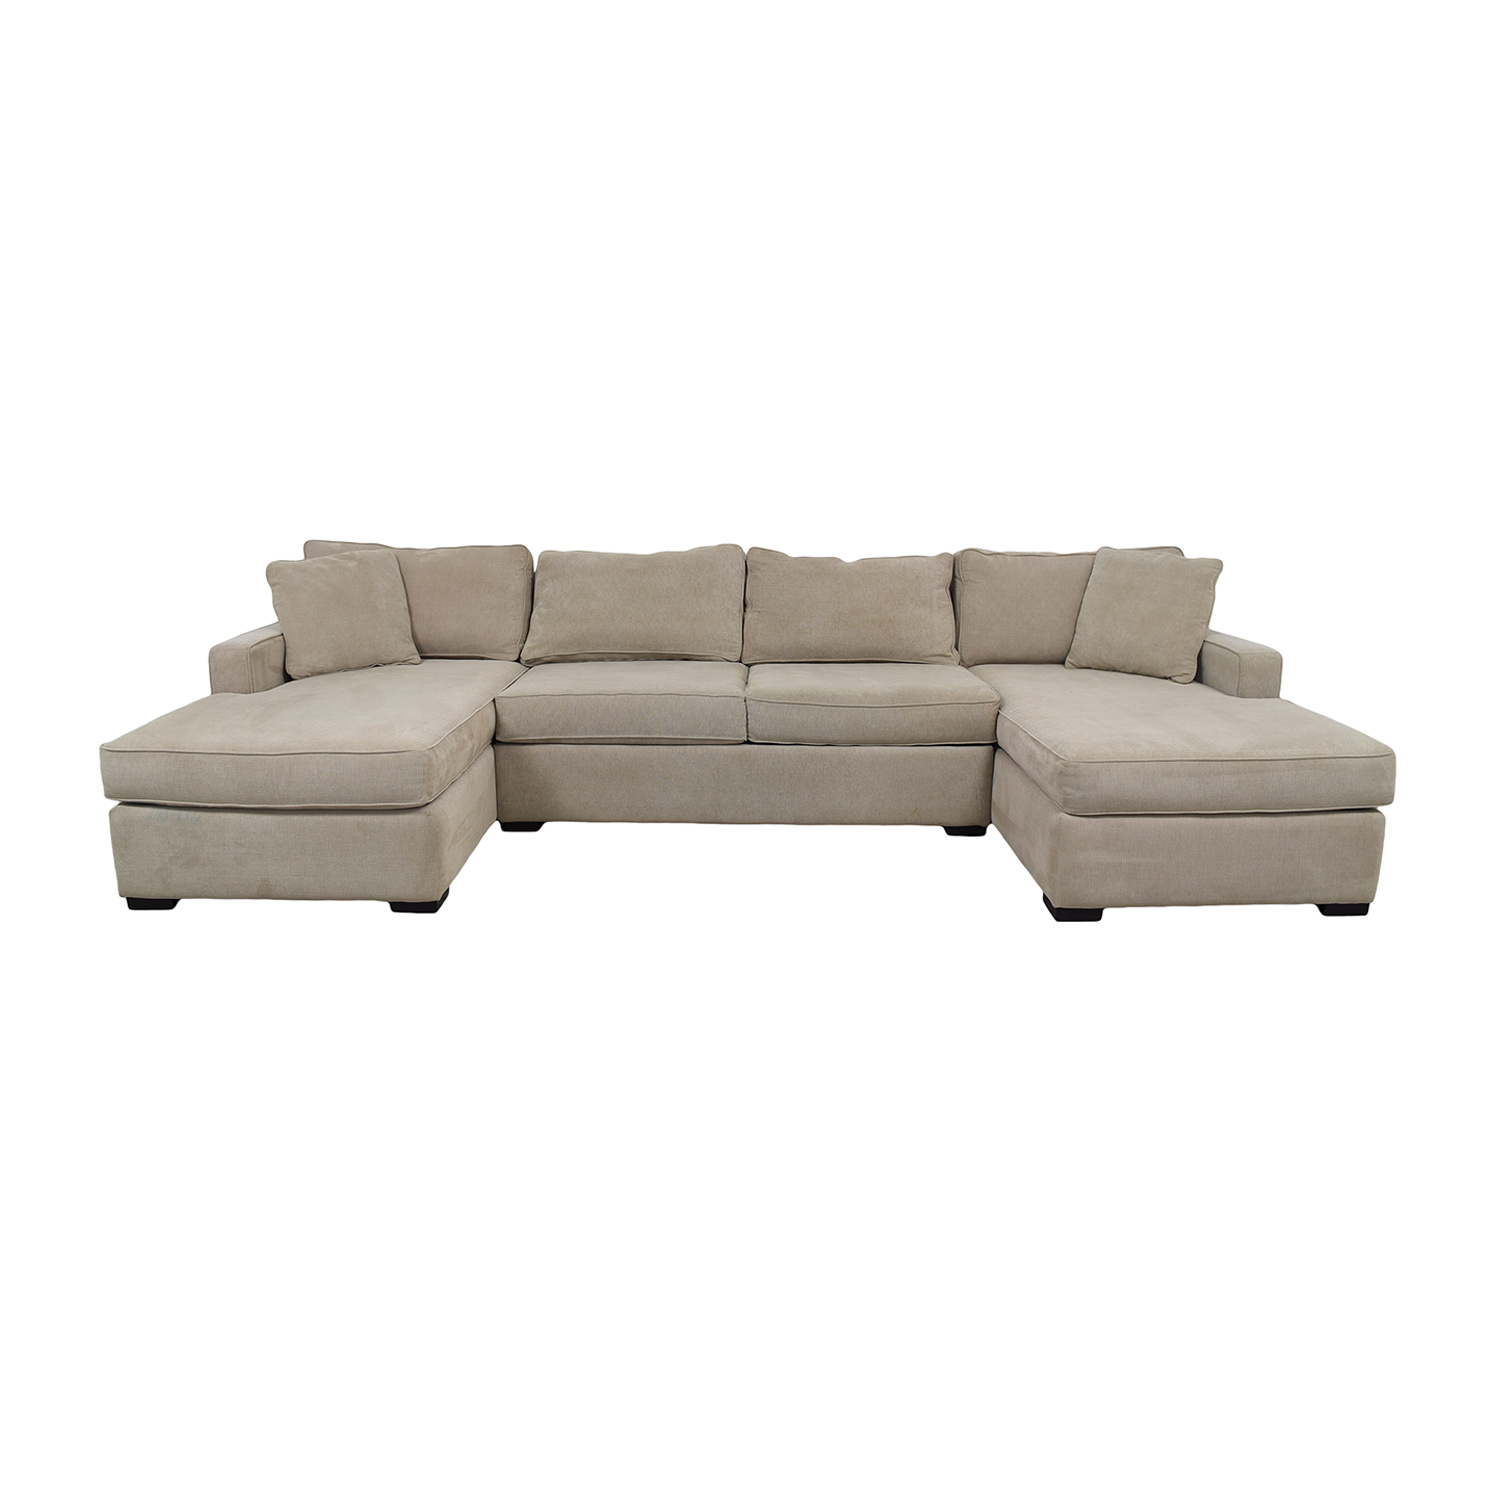 Double Chaise Sectional 54% Off - Macy's Macy's Beige Double Chaise Sectional / Sofas